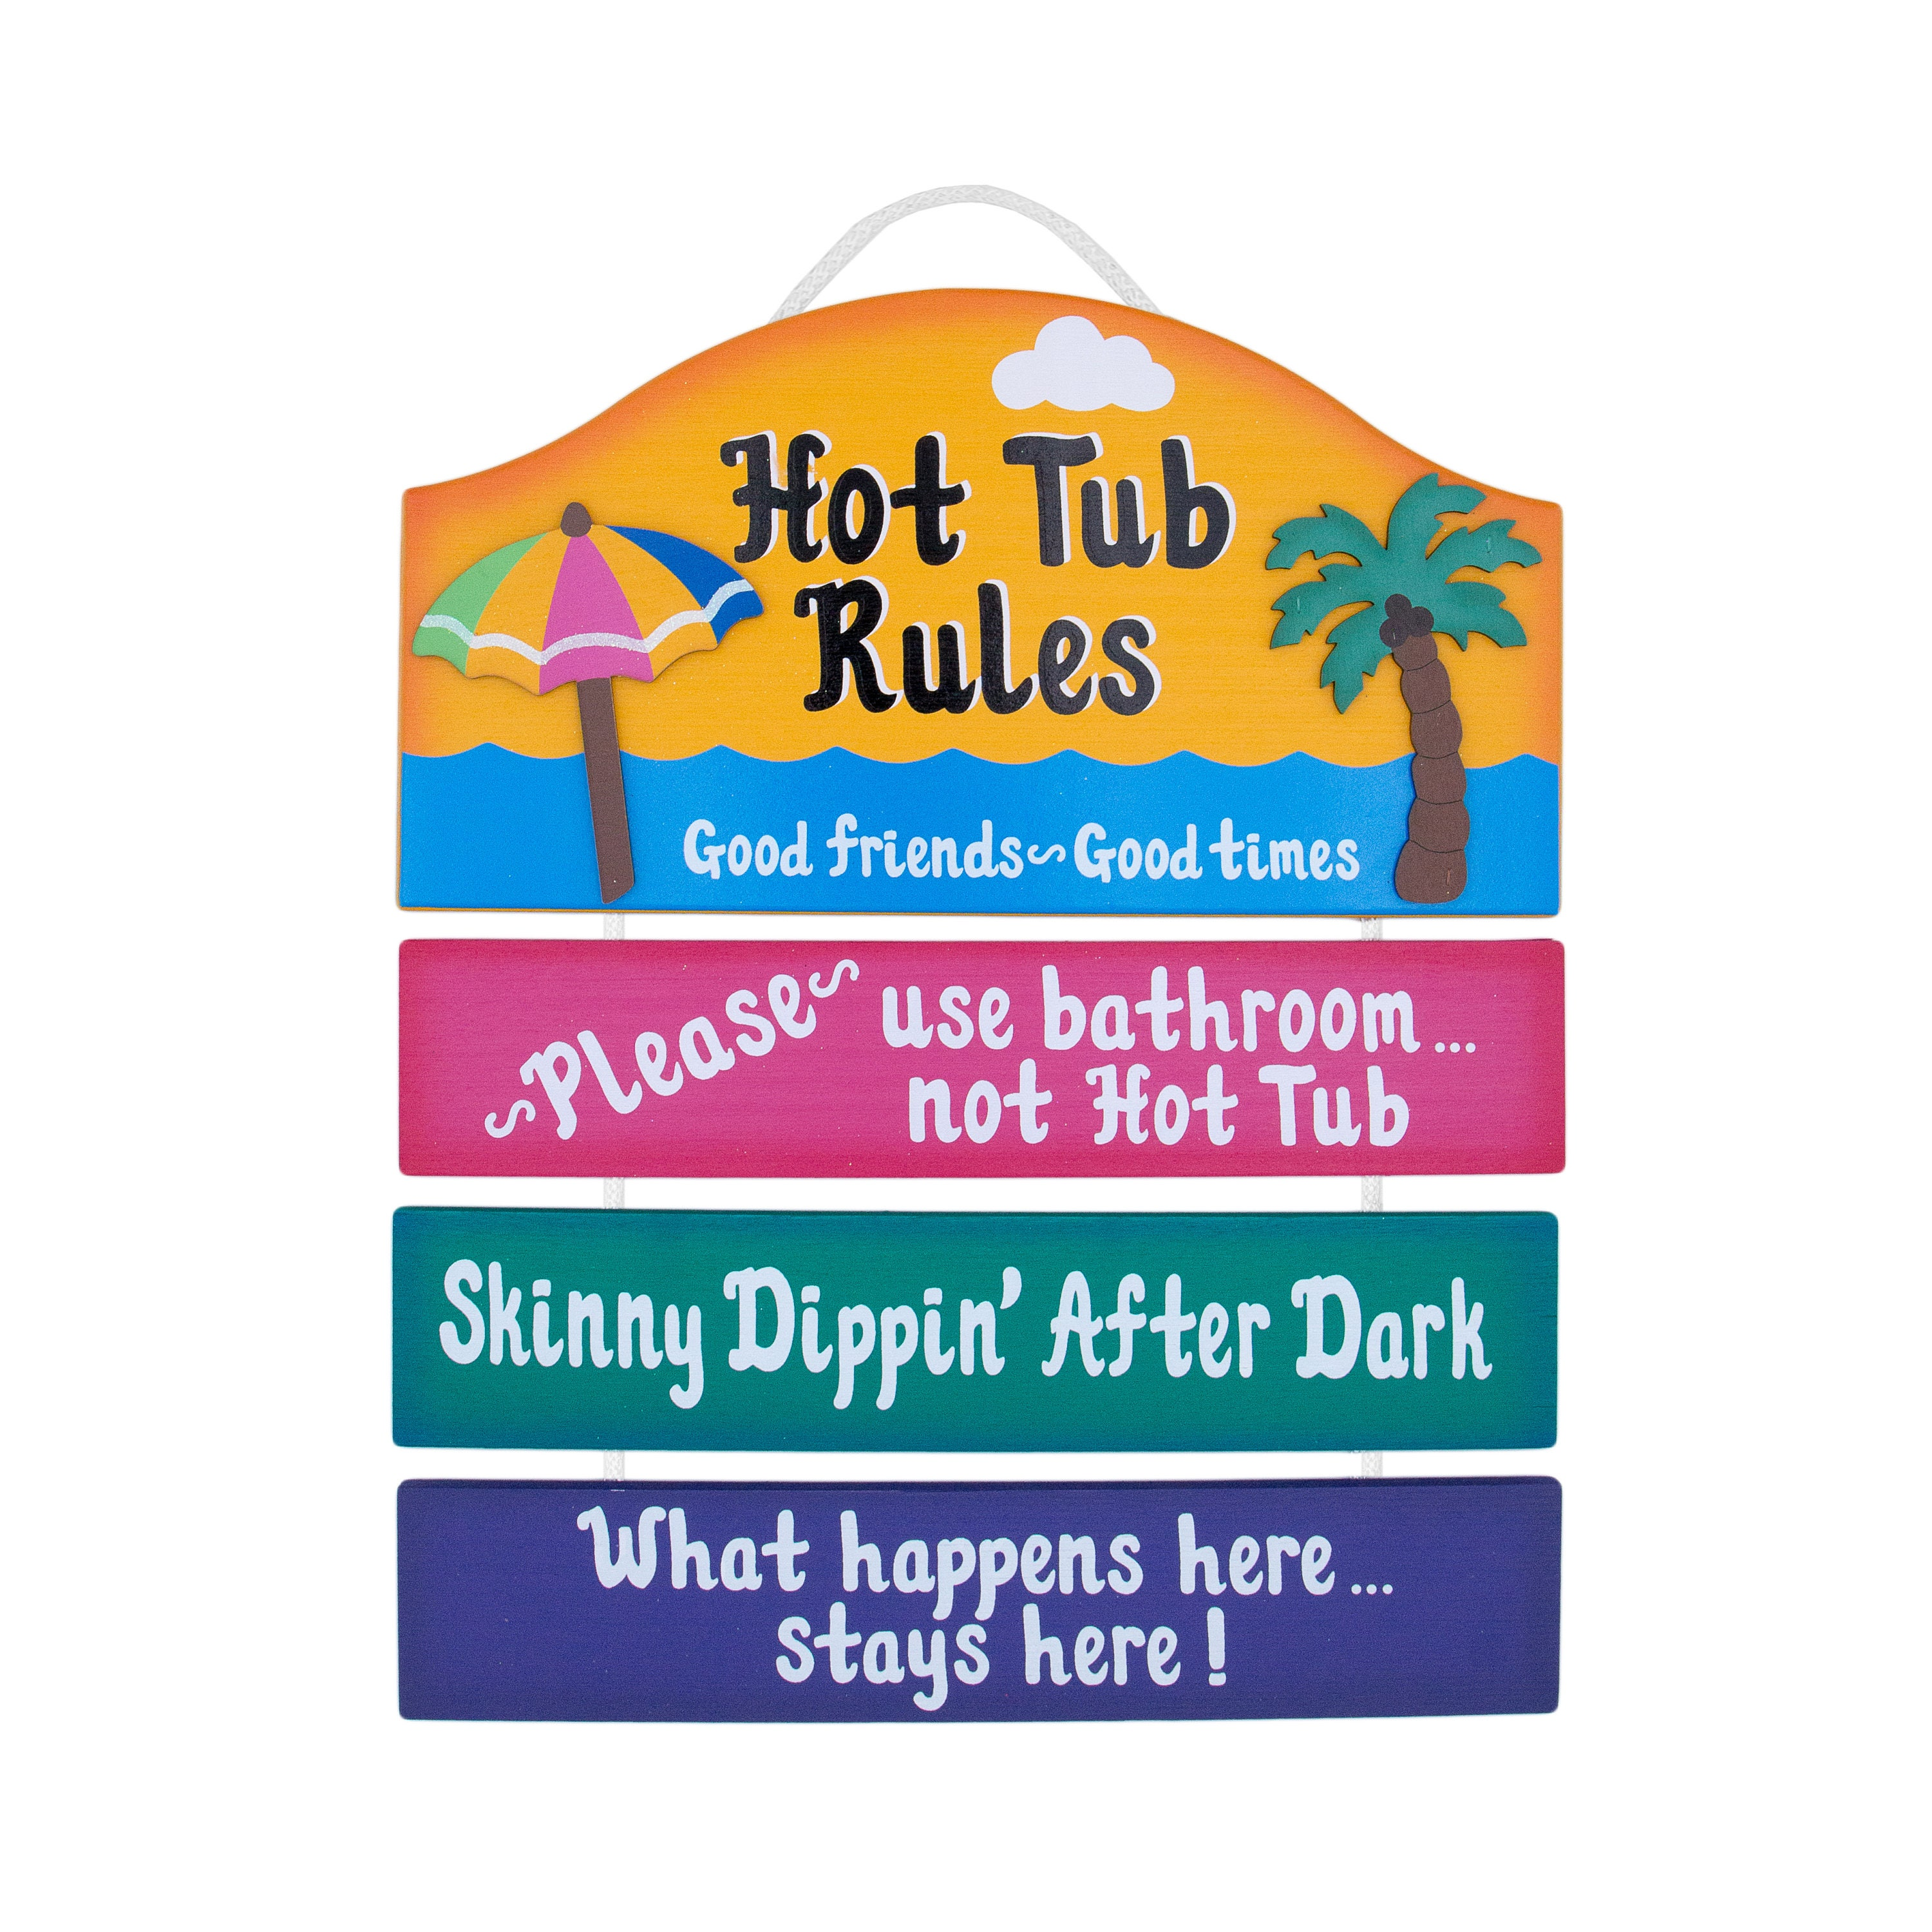 island category more hot rules hilton read archives head of club tub announcements